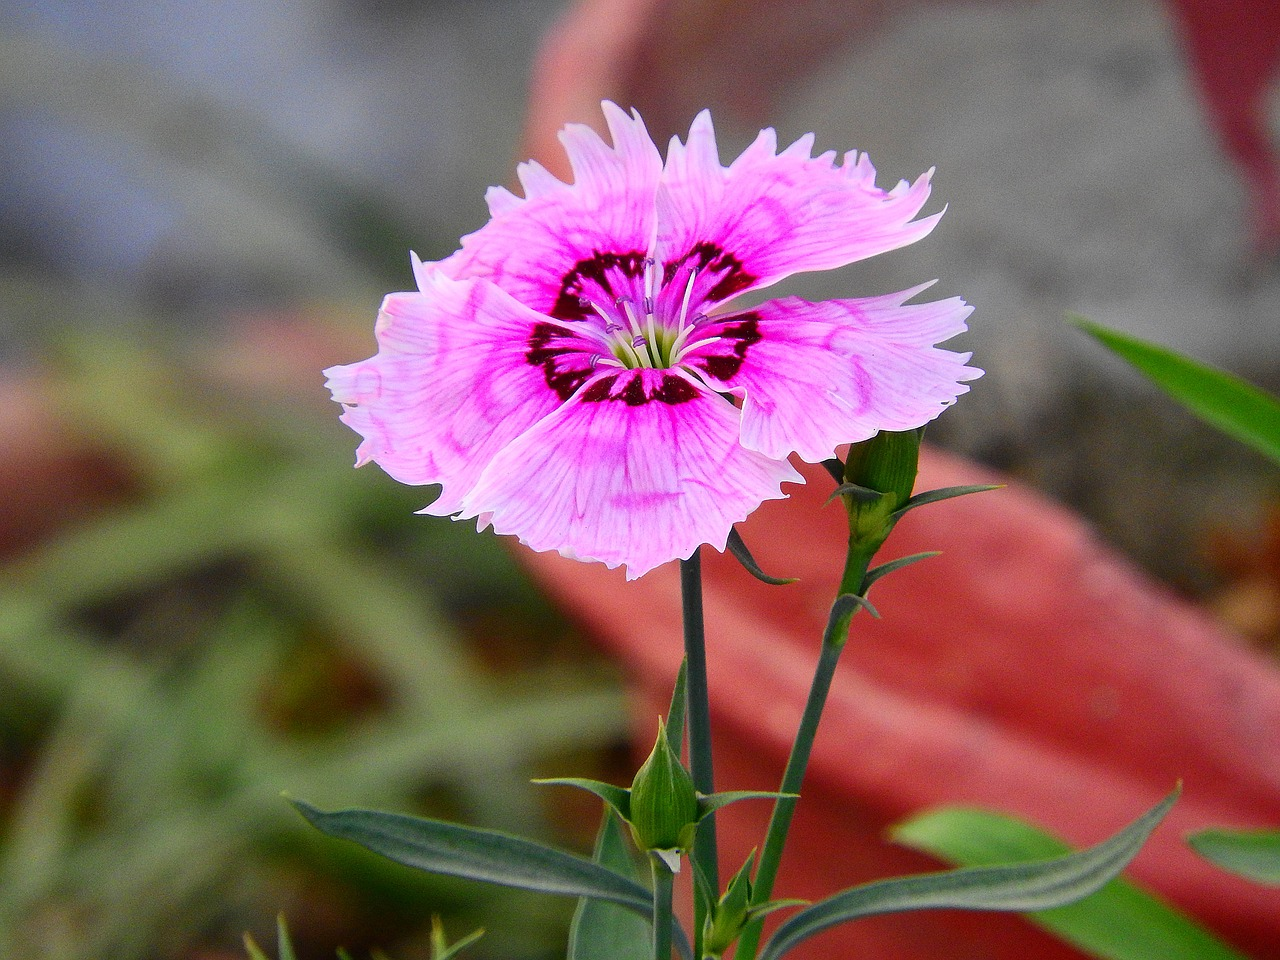 dianthus,flower,garden,colorful,bloom,lawn,season,free pictures, free photos, free images, royalty free, free illustrations, public domain